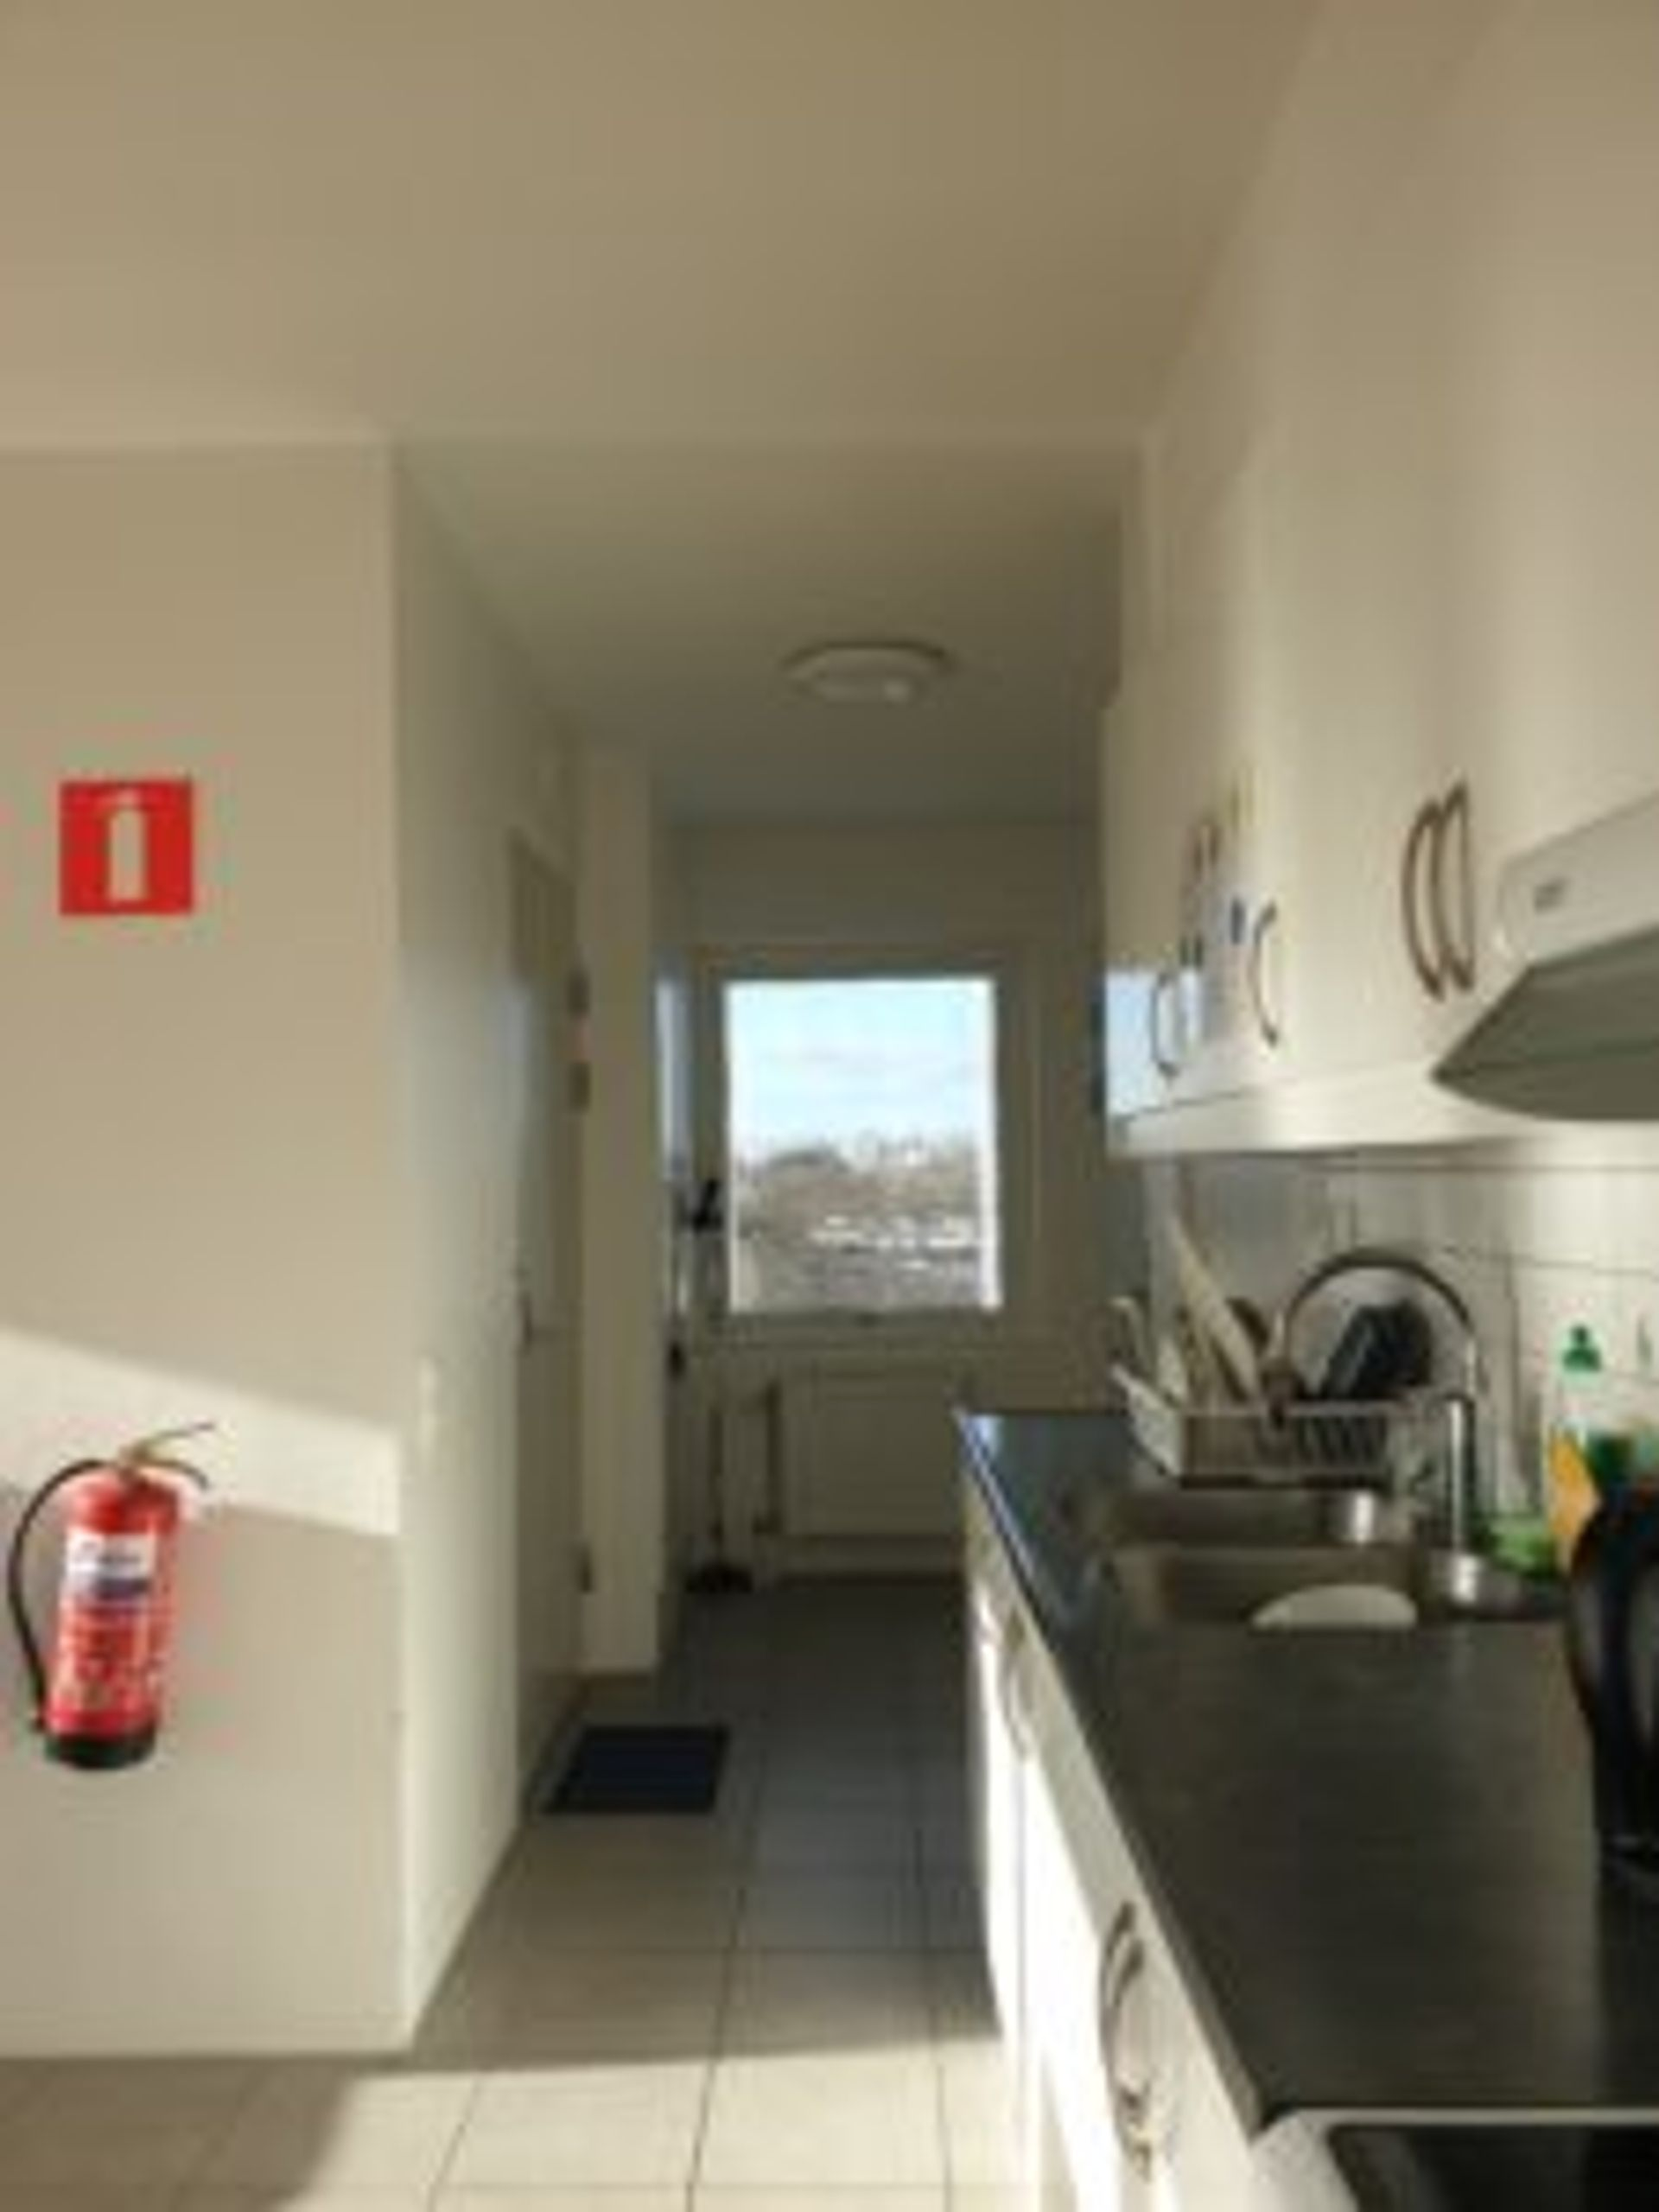 A shared kitchen in student accommodation.